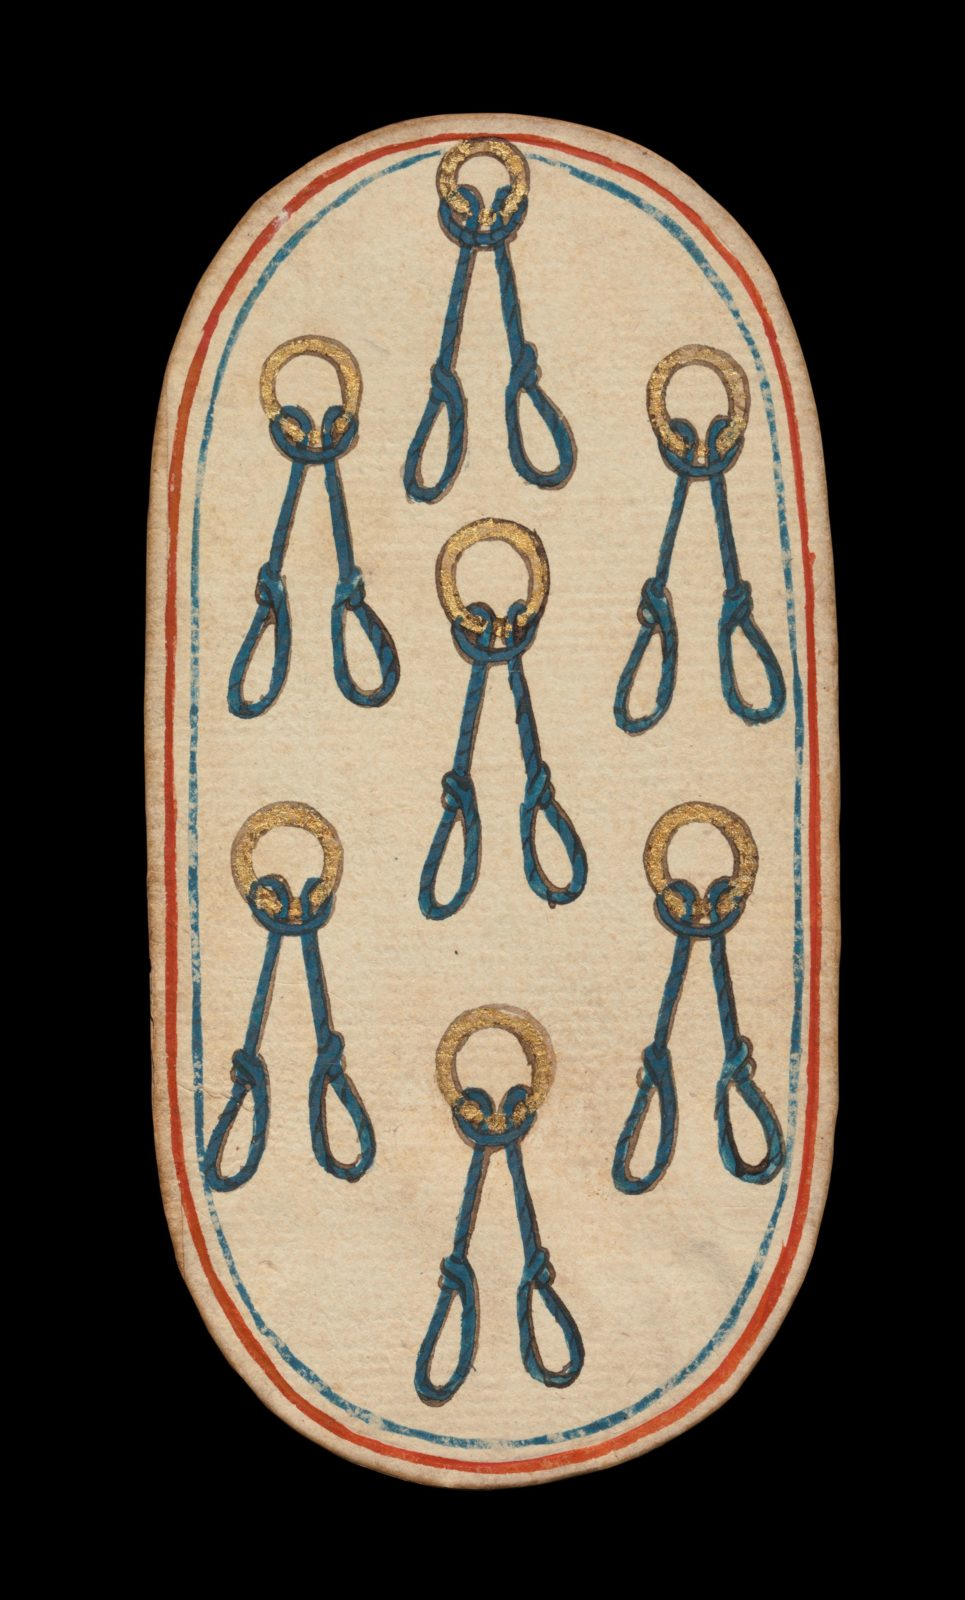 7 of Nooses, from The Cloisters Playing Cards